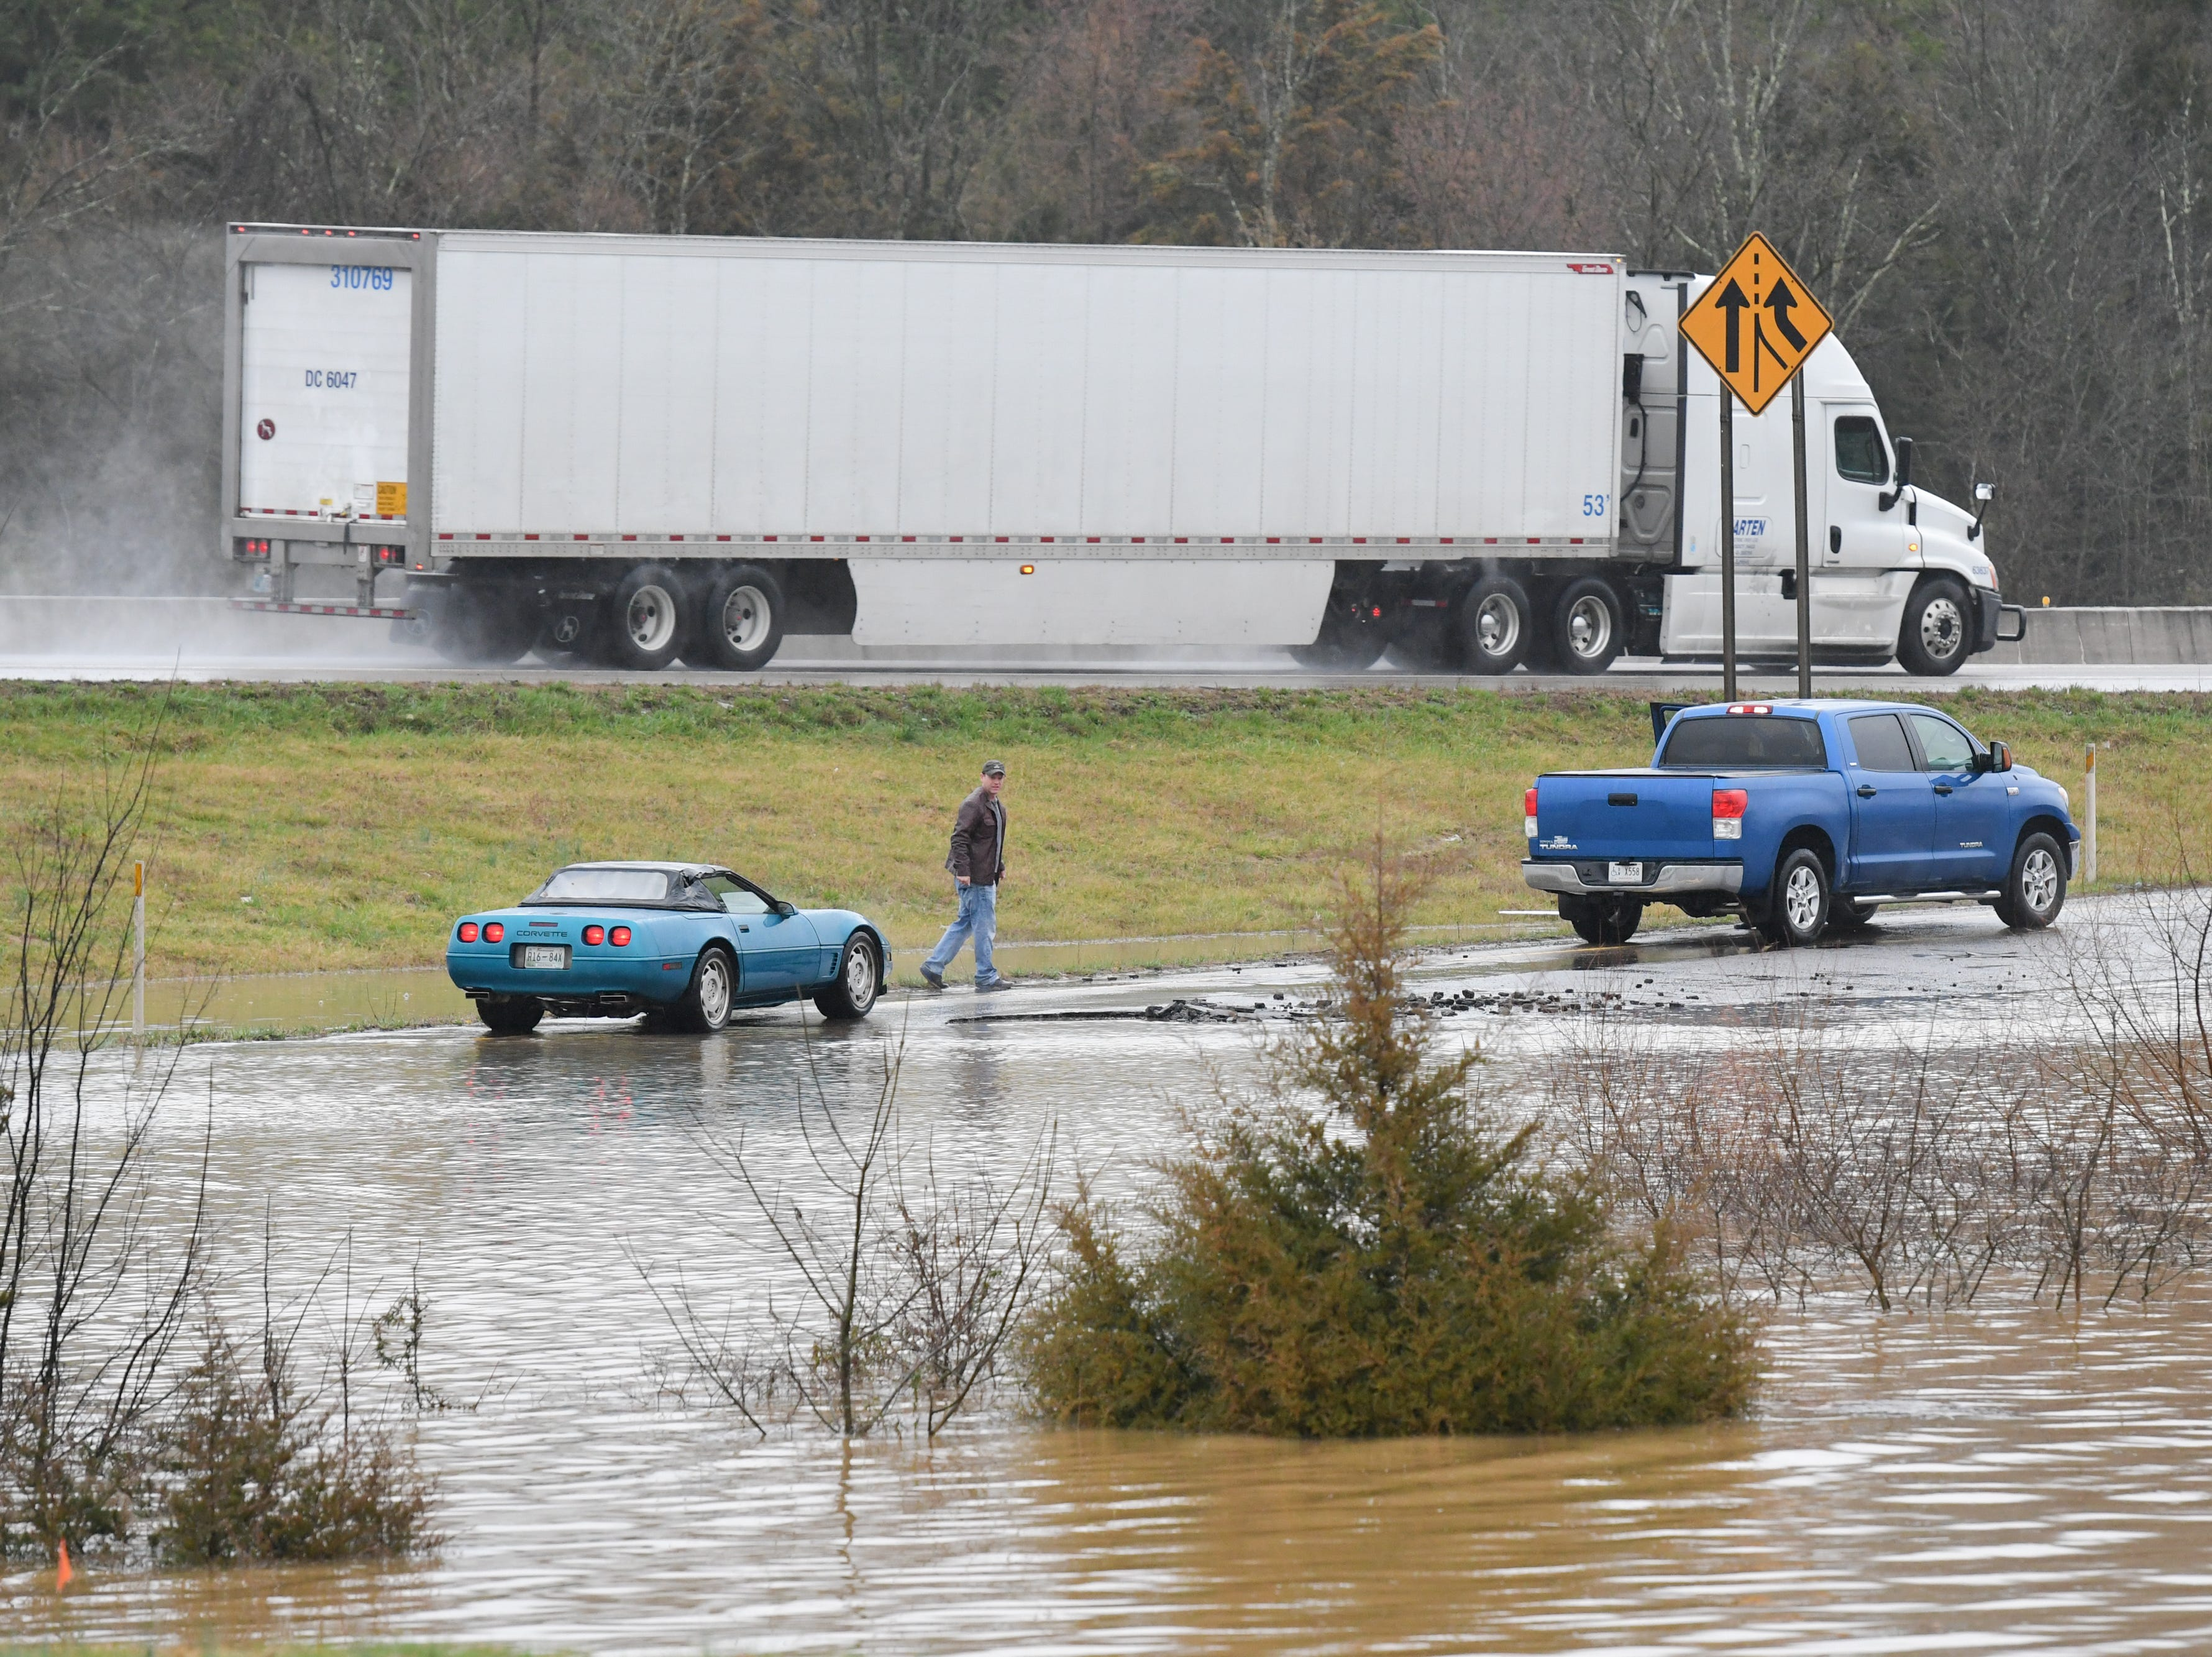 A motorist walks away after his car became disabled due to flooding on the entrance ramp to I-75 South from Emory Road in Knox County Saturday Feb. 23, 2019. The Knoxville area could see between 2 and 3 inches of rain through the weekend.